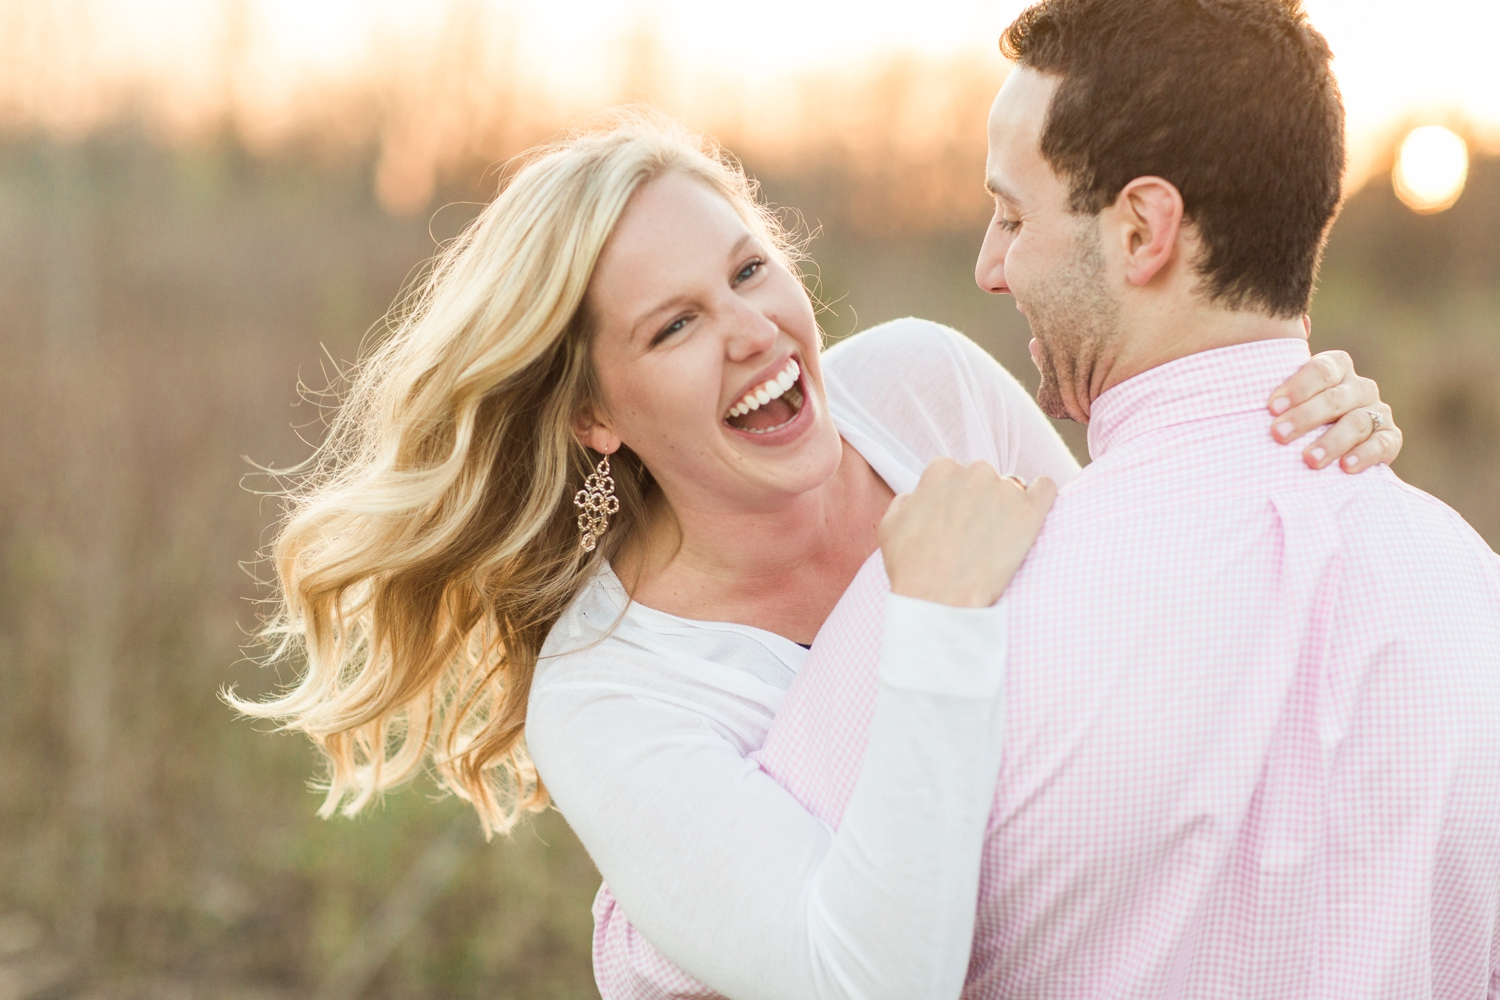 indianapolis_wedding_photographer_golden_hour_engagement_chloe_luka_photography_6149.jpg